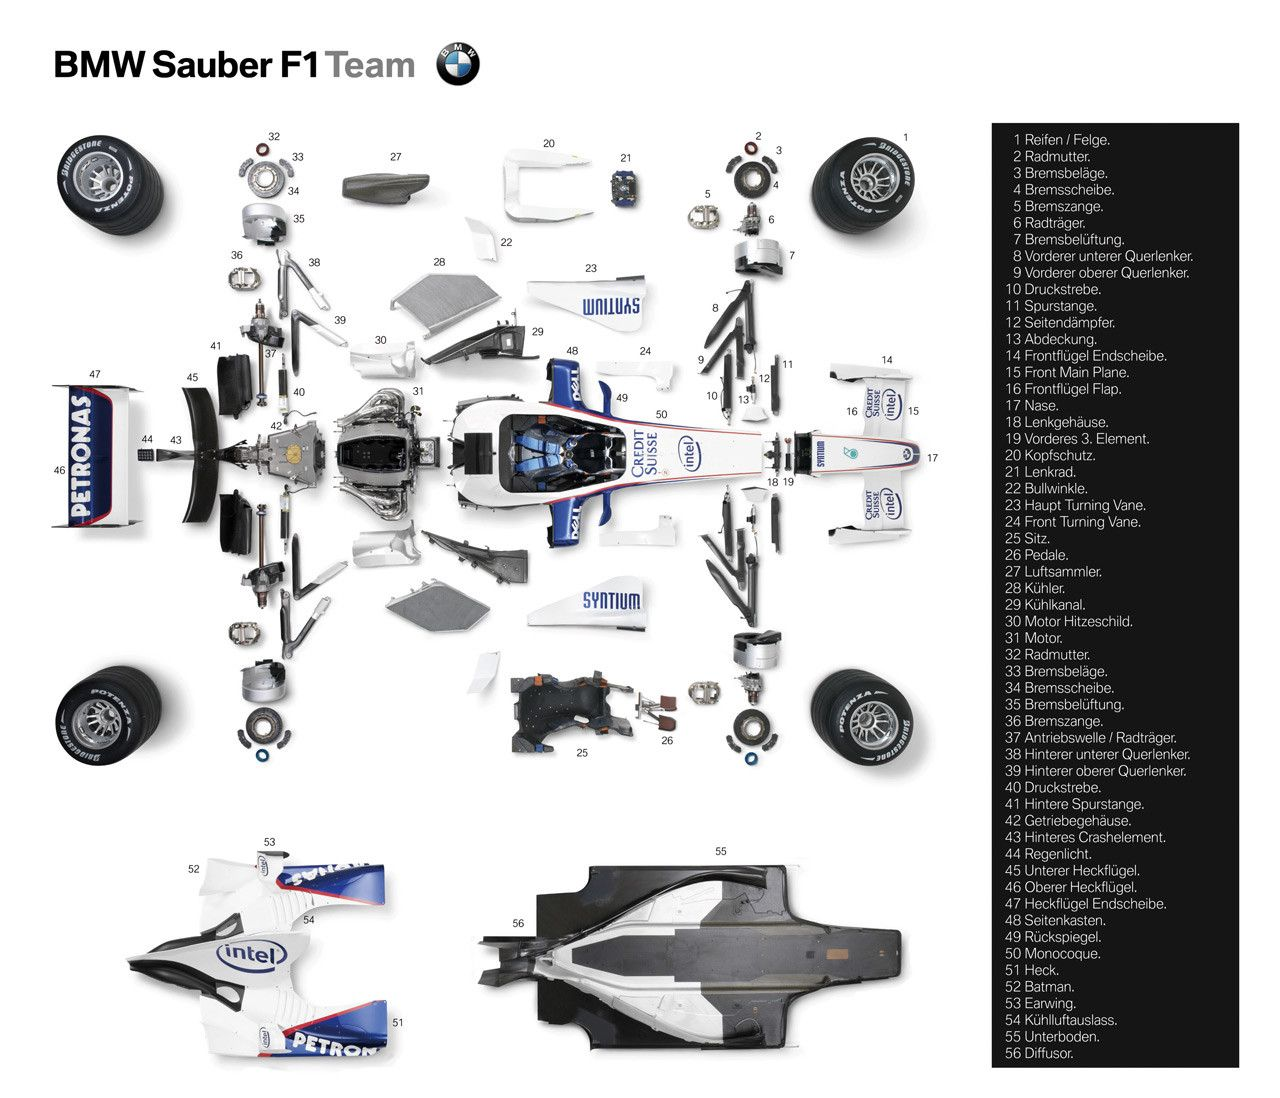 f1 bmw engine diagram 2007 bmw sauber f1 [exploded view] | autos, motorcycles ... #1